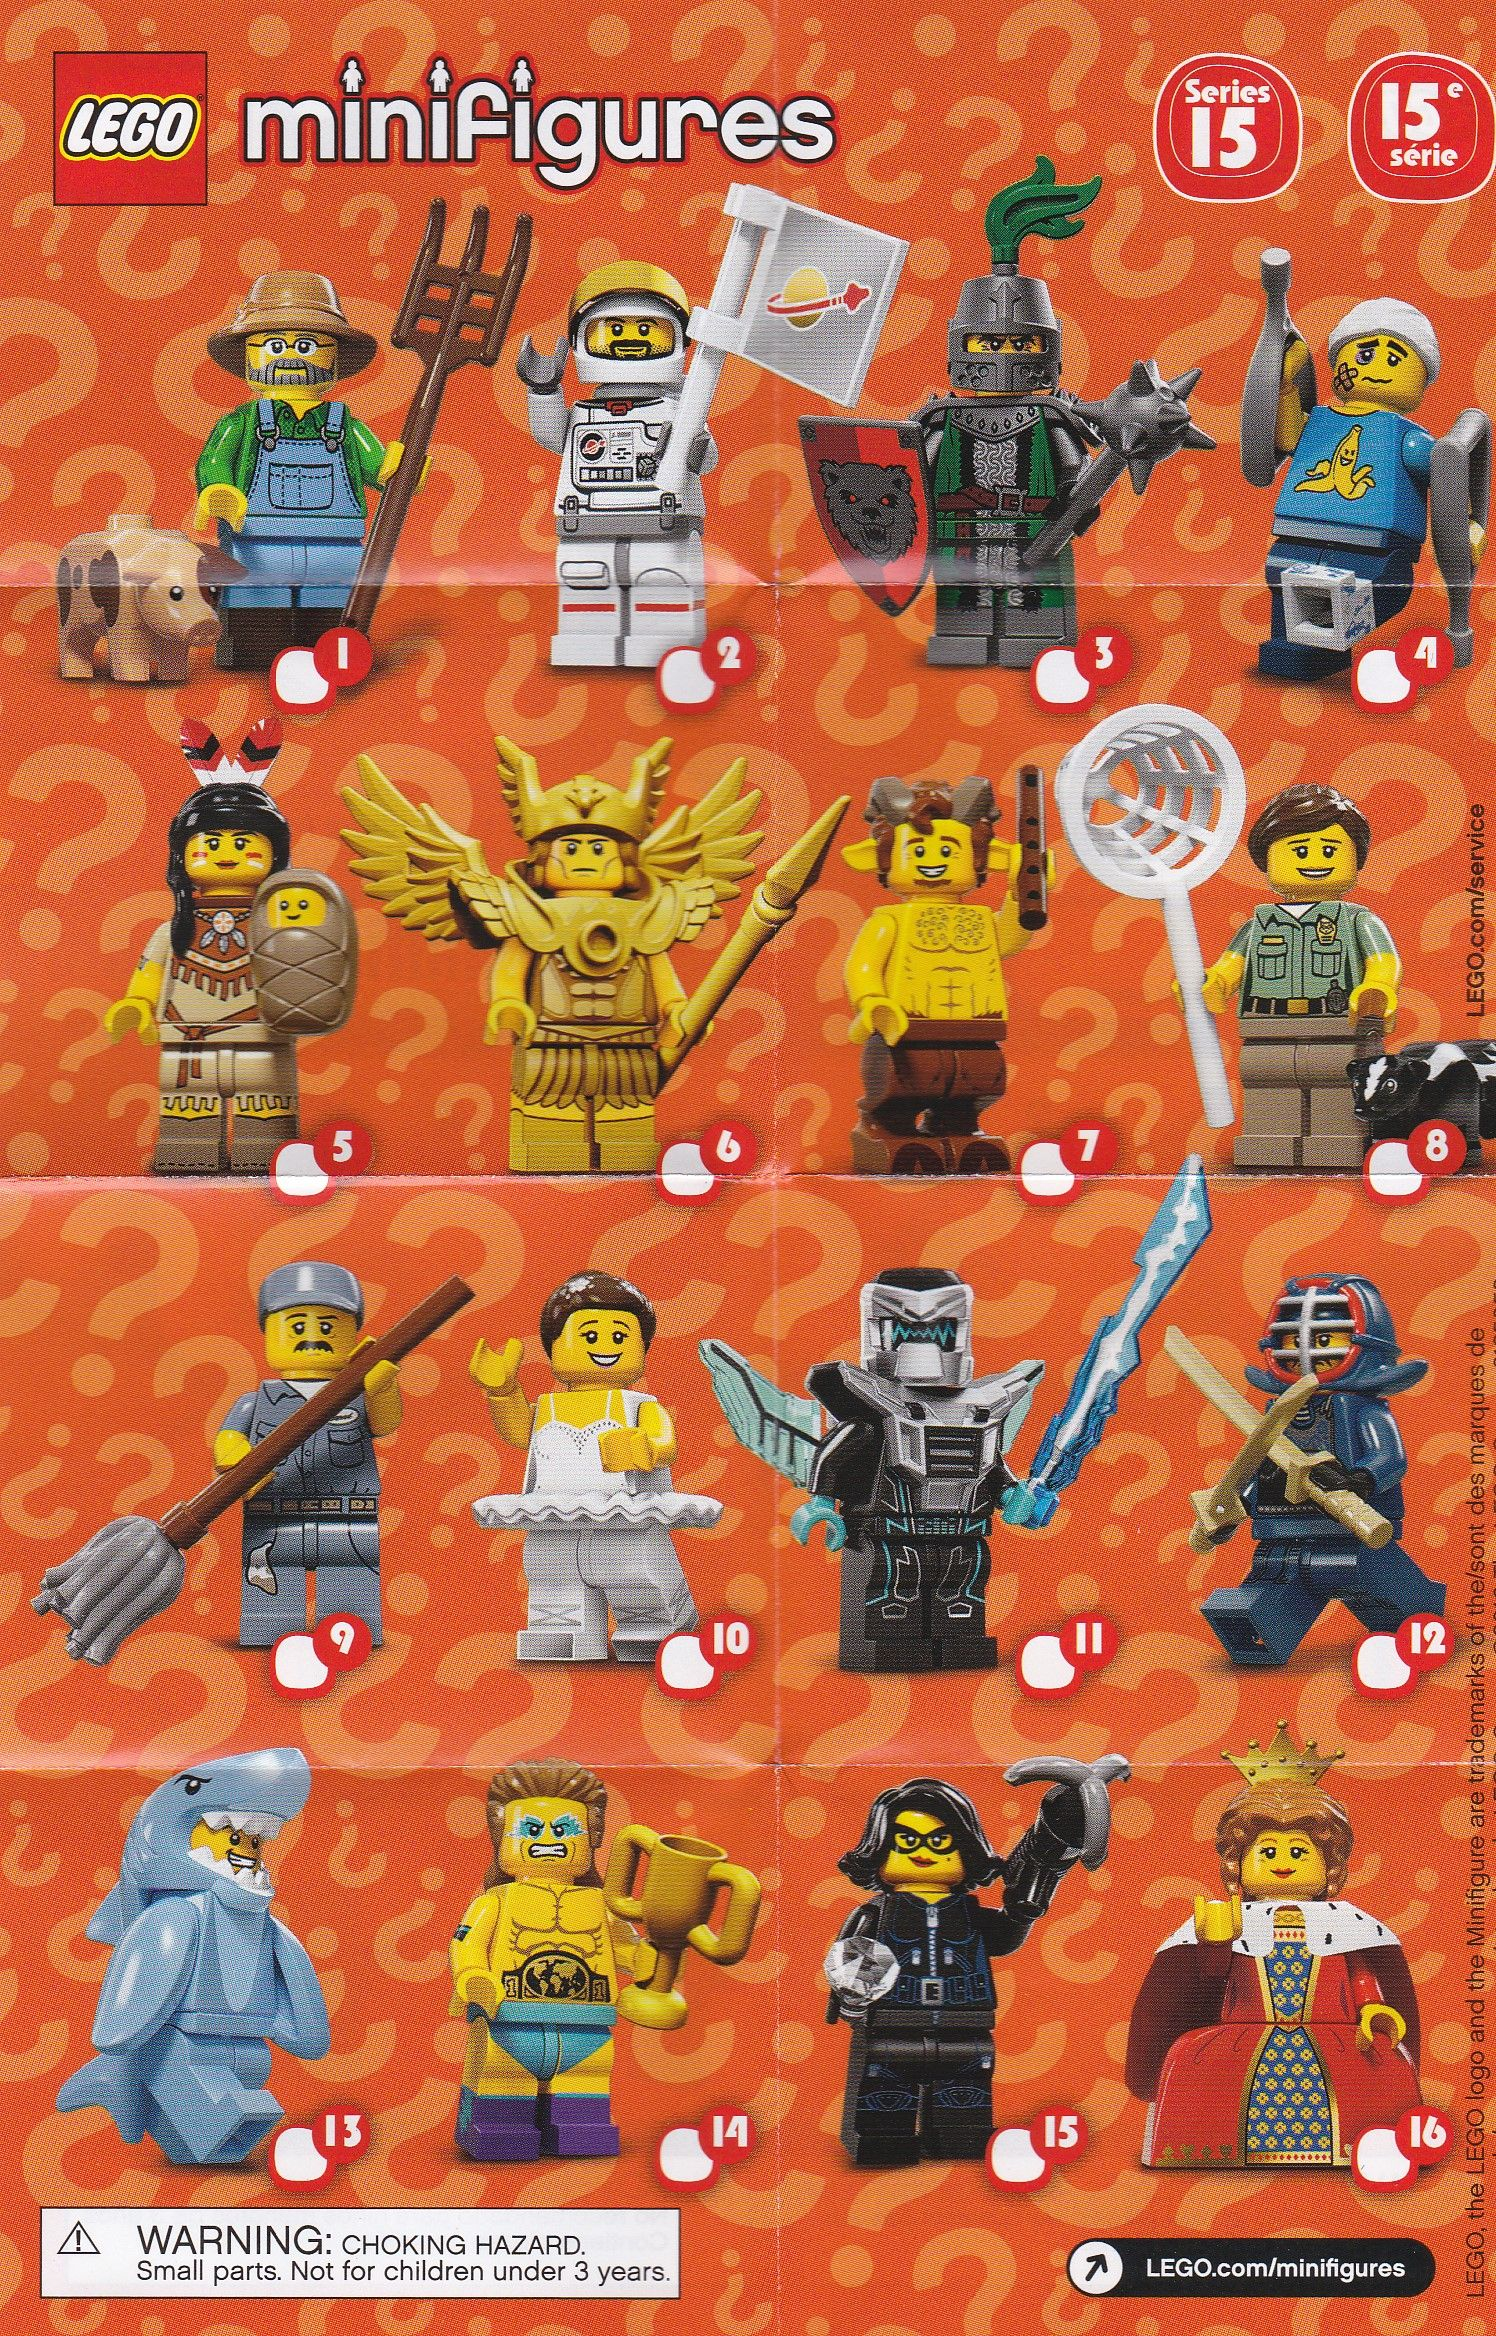 lego minifigures series 4 review